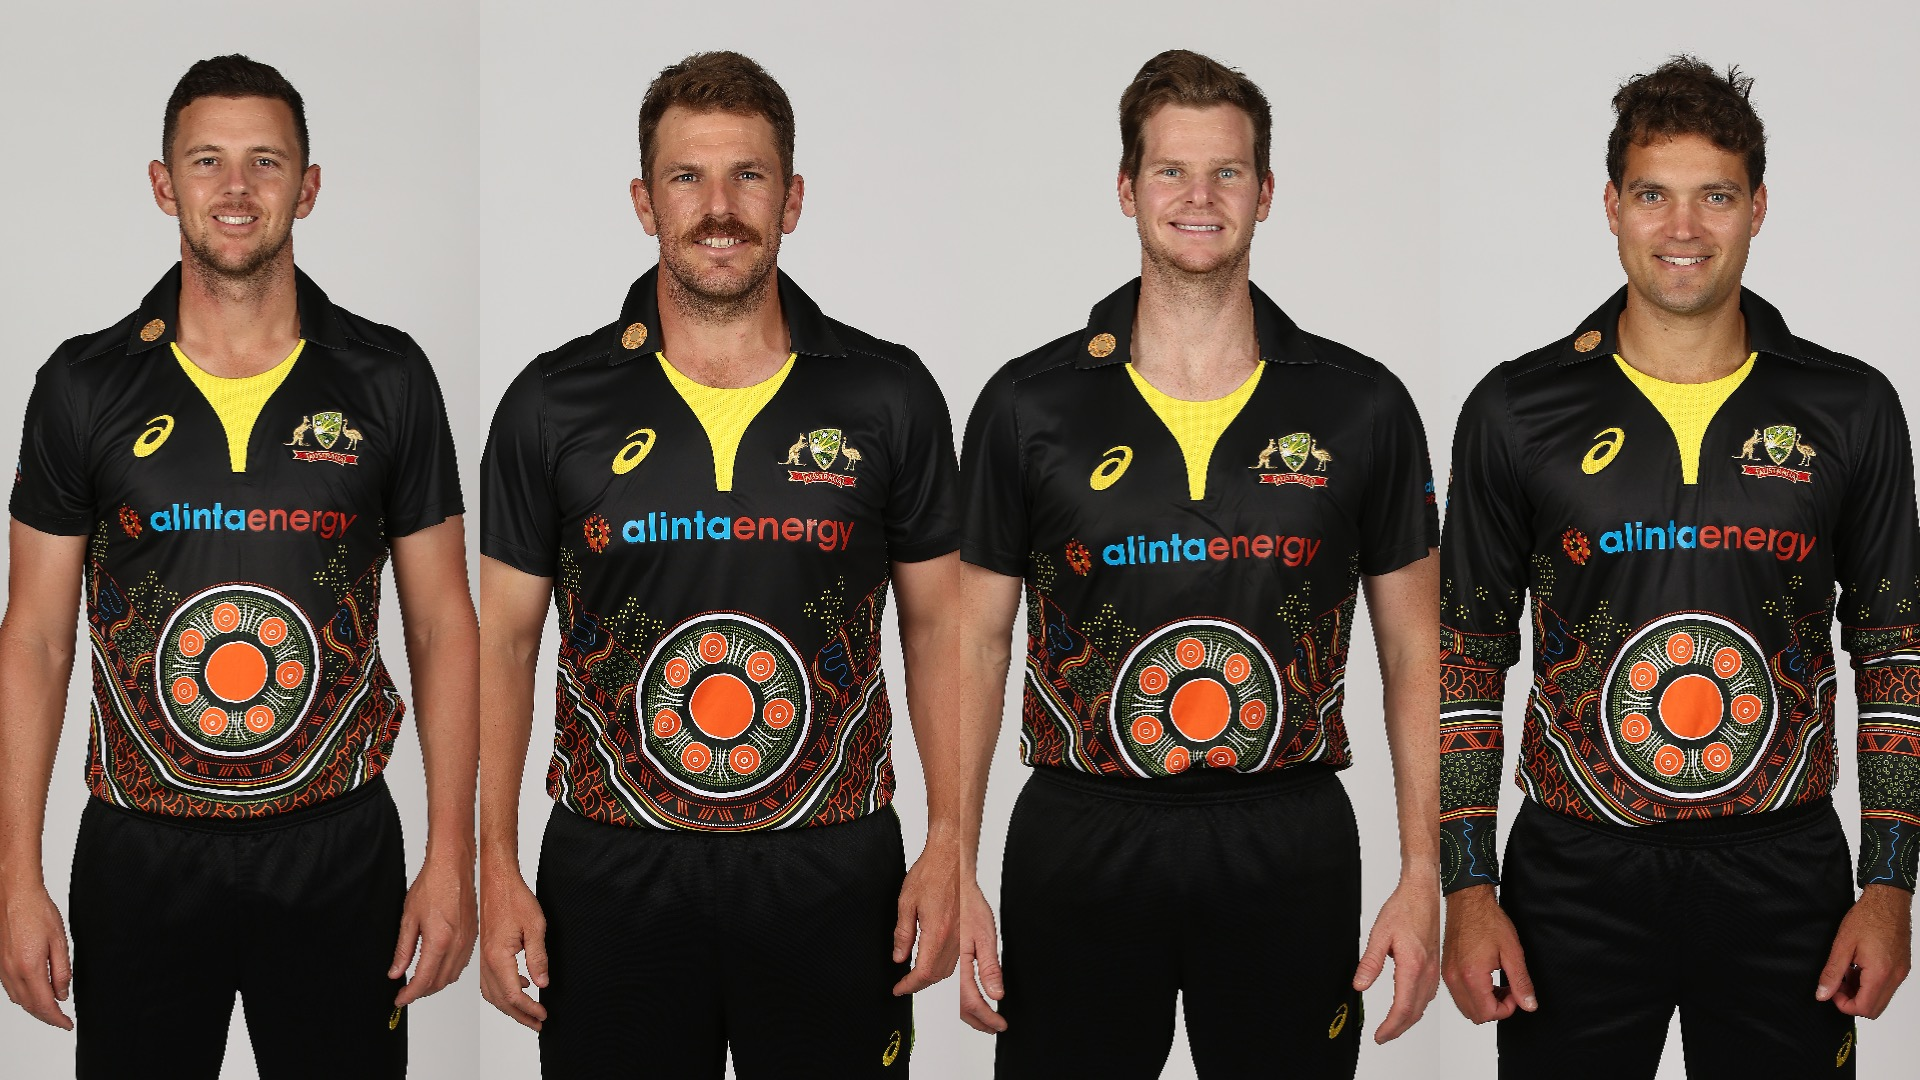 Australia will hon the newly designed jersey for the T20I series